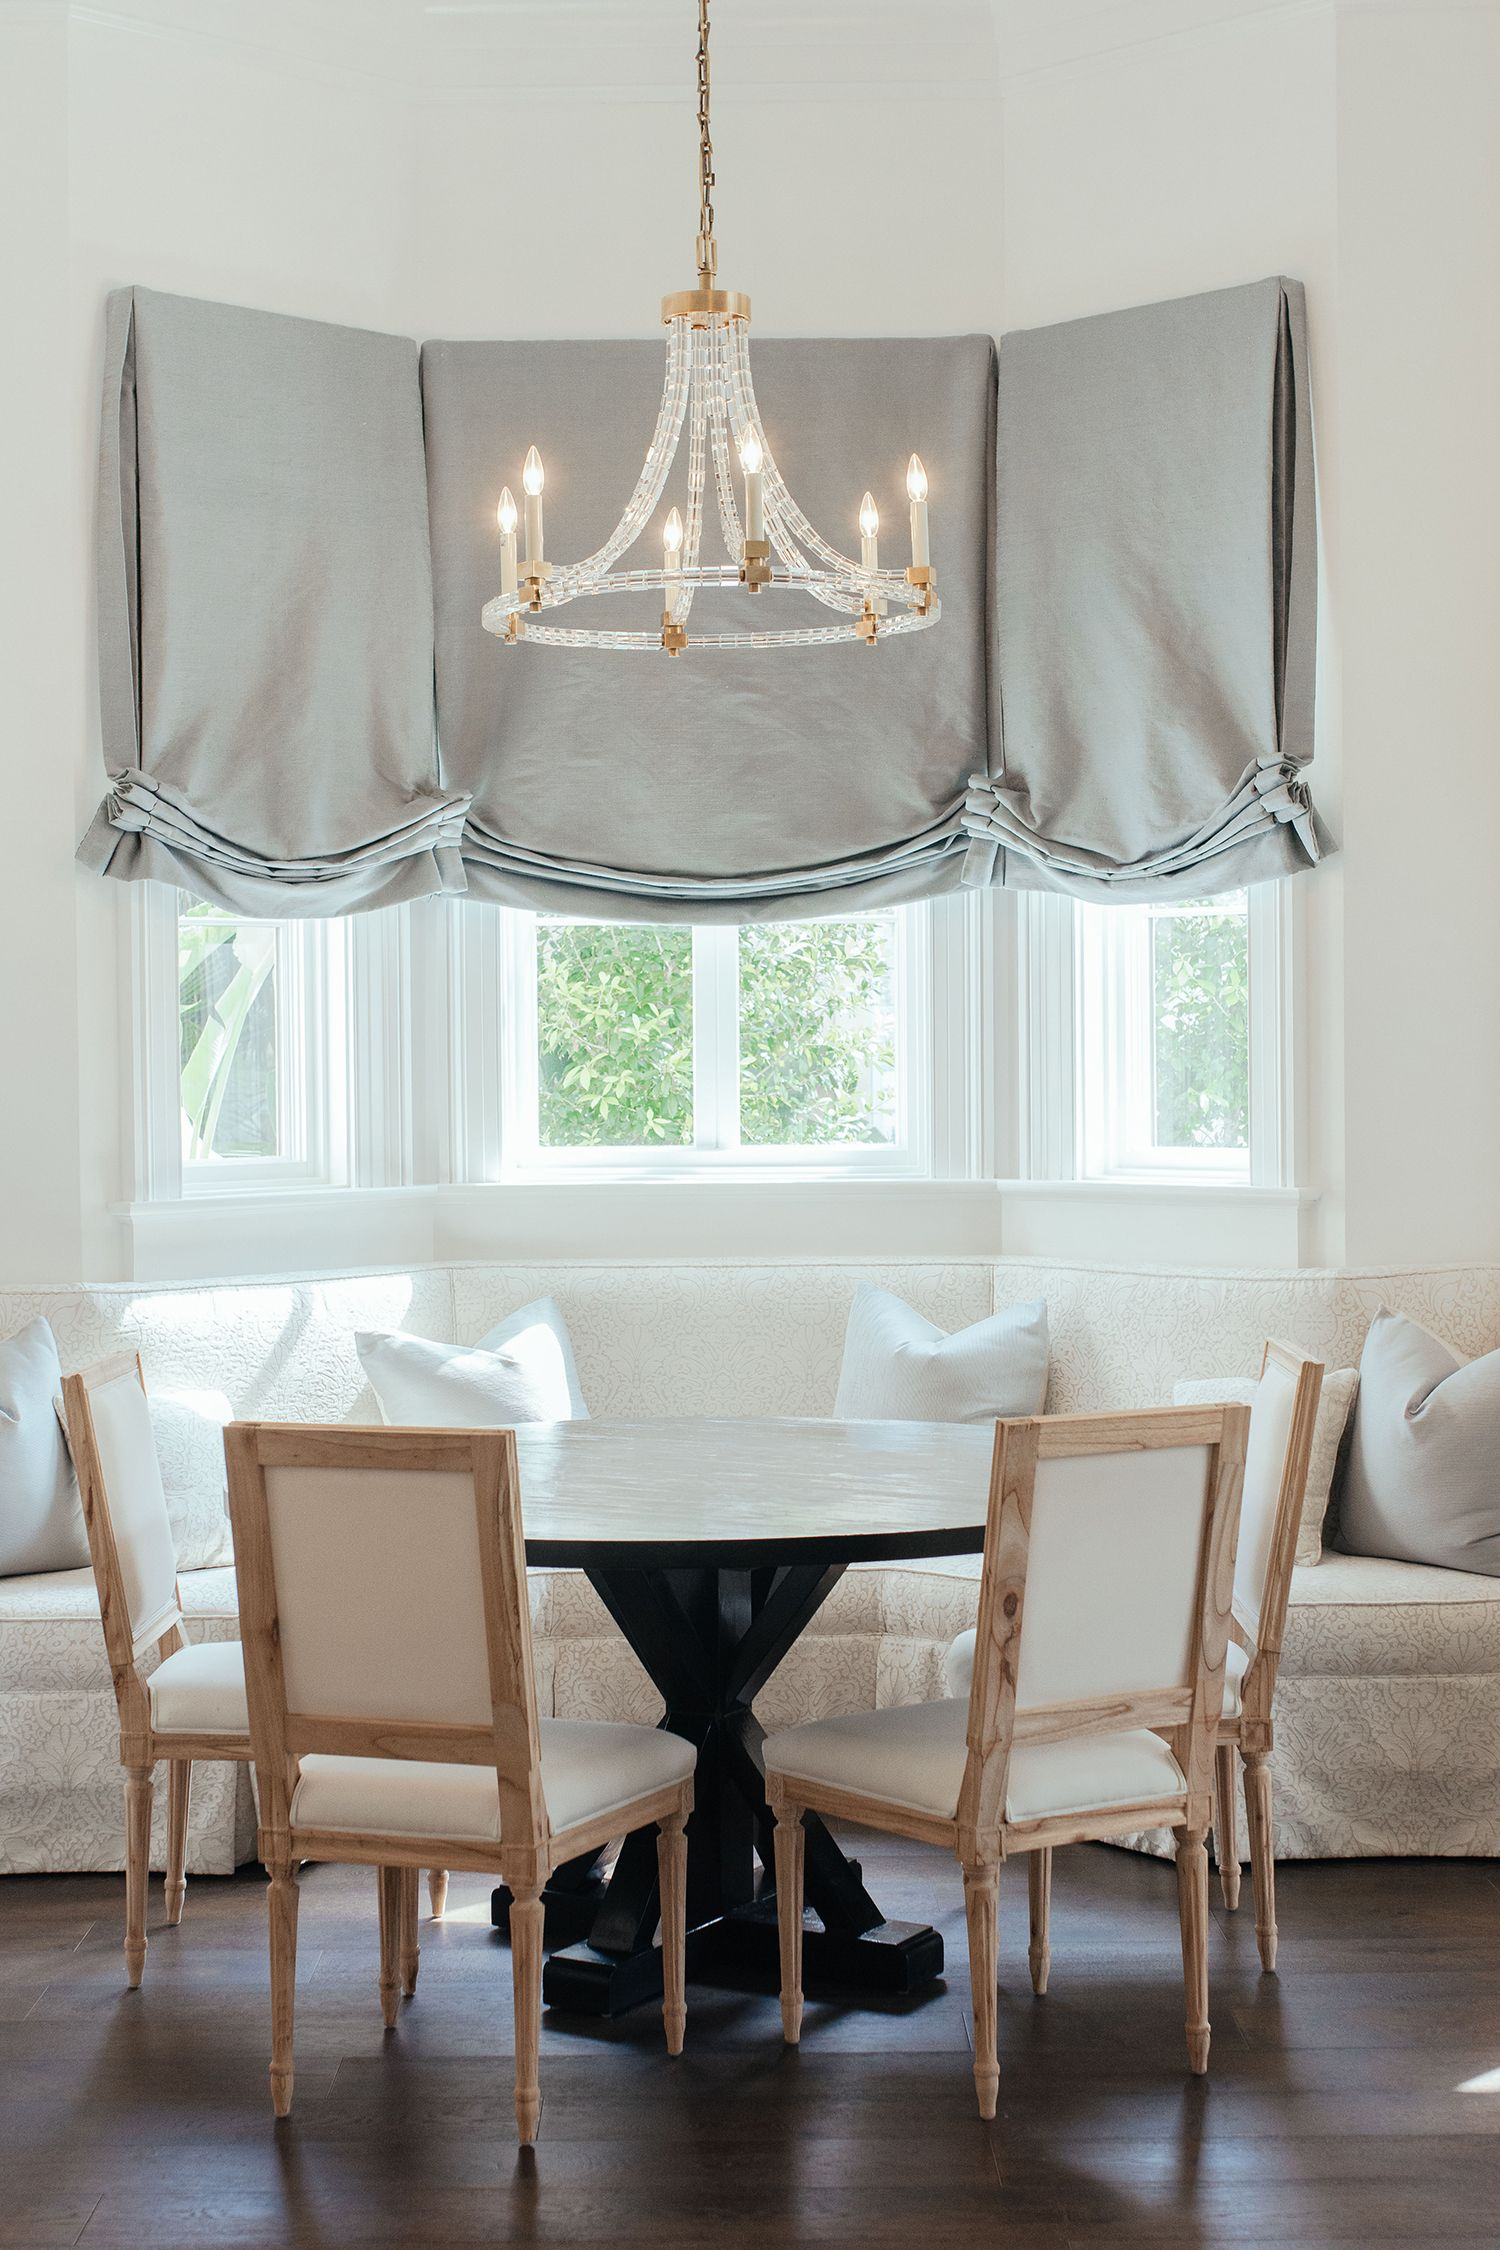 Casual Dining Room Design Ideas Jax Pedestal Table And Bienville Chairs From The Raw Line From Ave Bay Window Curtain Inspiration Bay Window Bay Window Seat